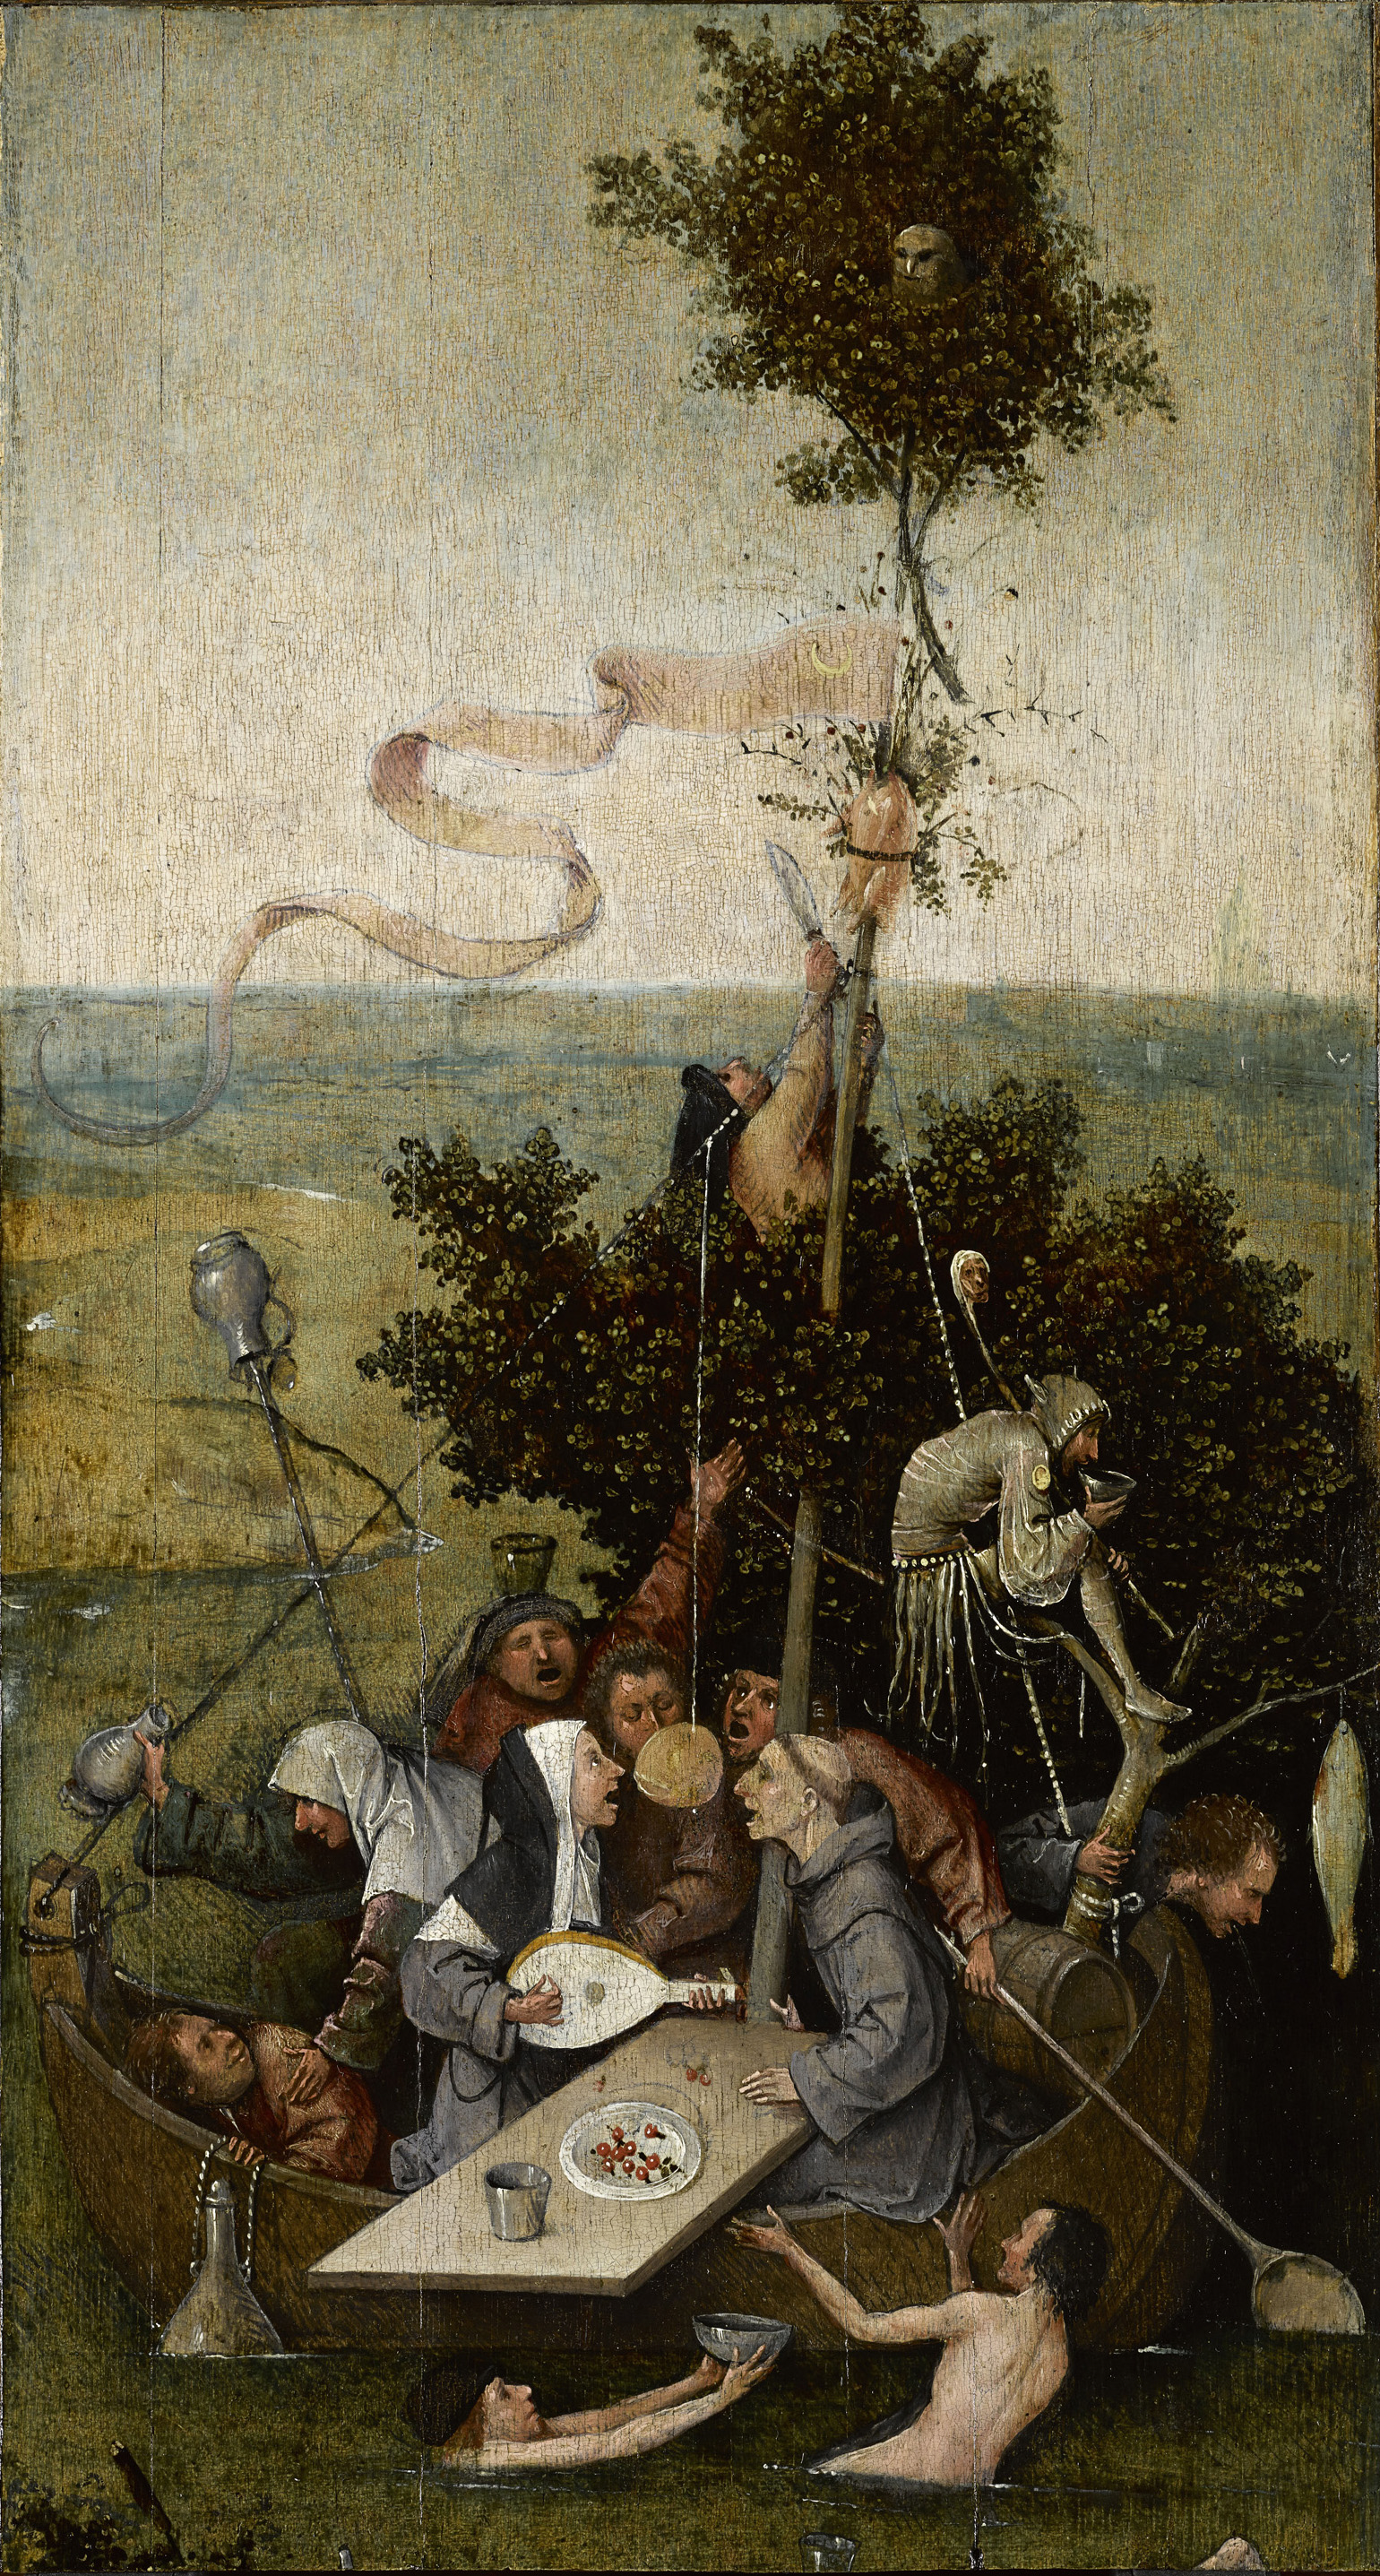 Jheronimus Bosch, Ship of fools